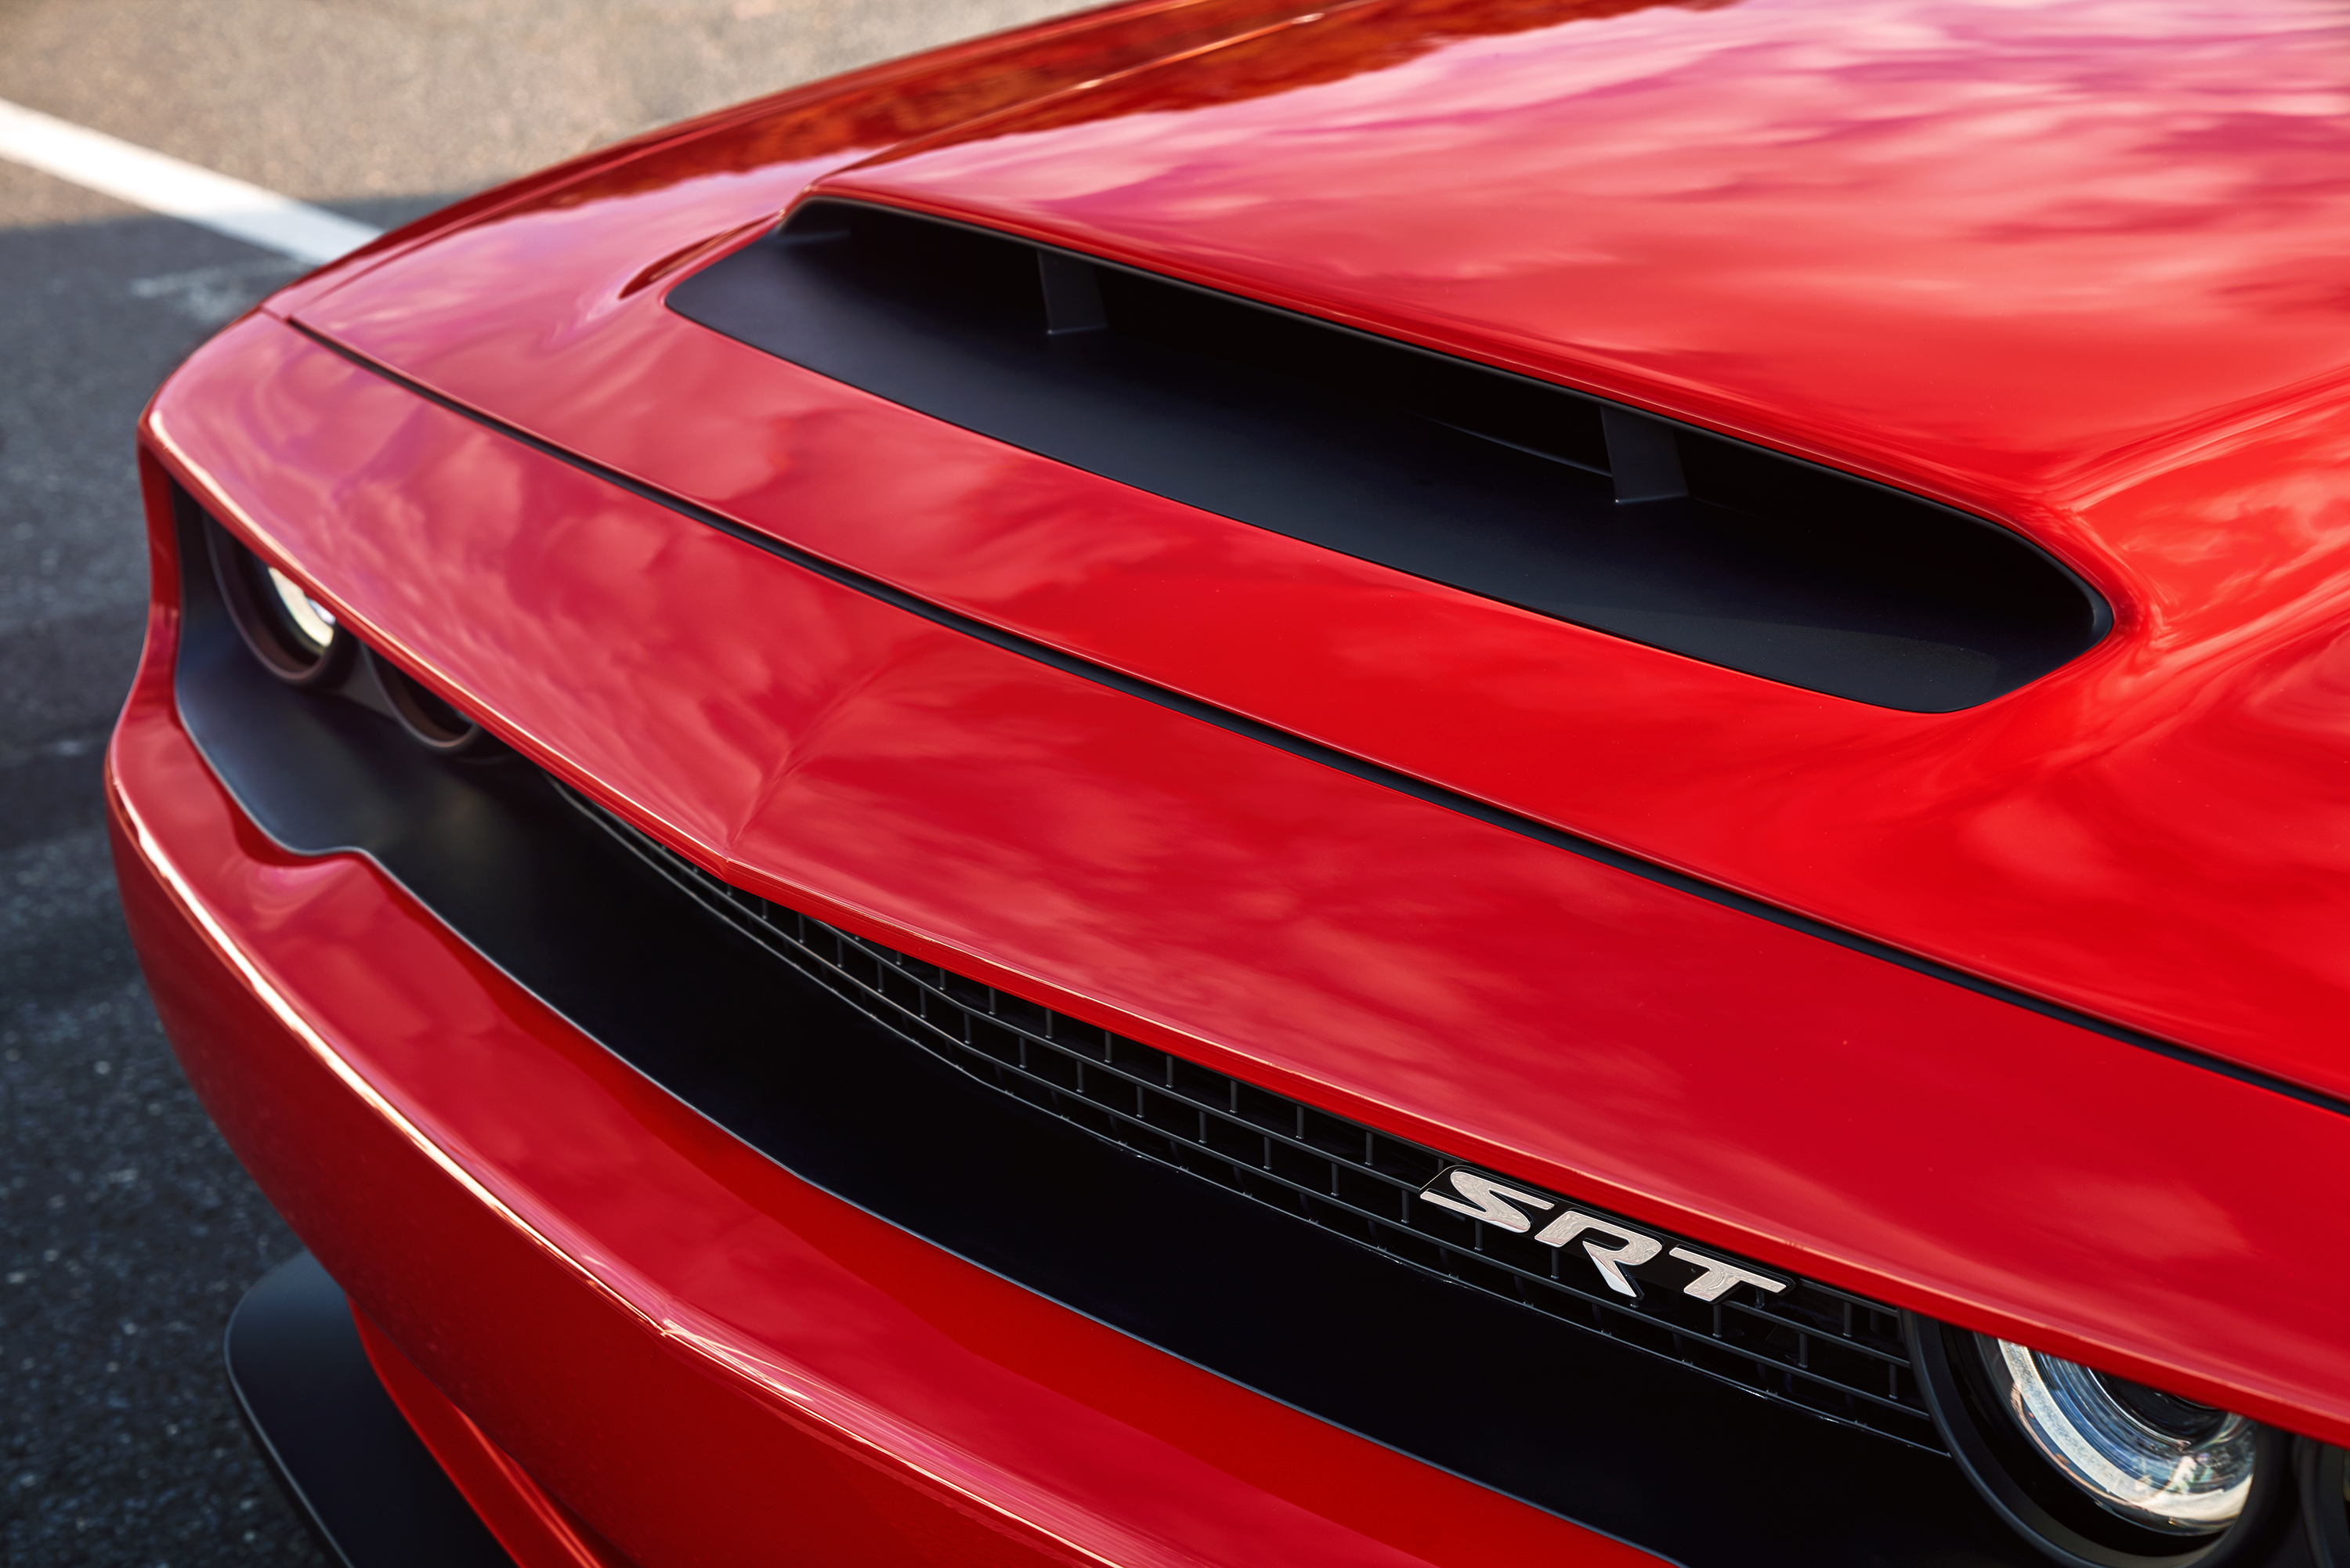 2018 Dodge Challenger SRT Demon hood